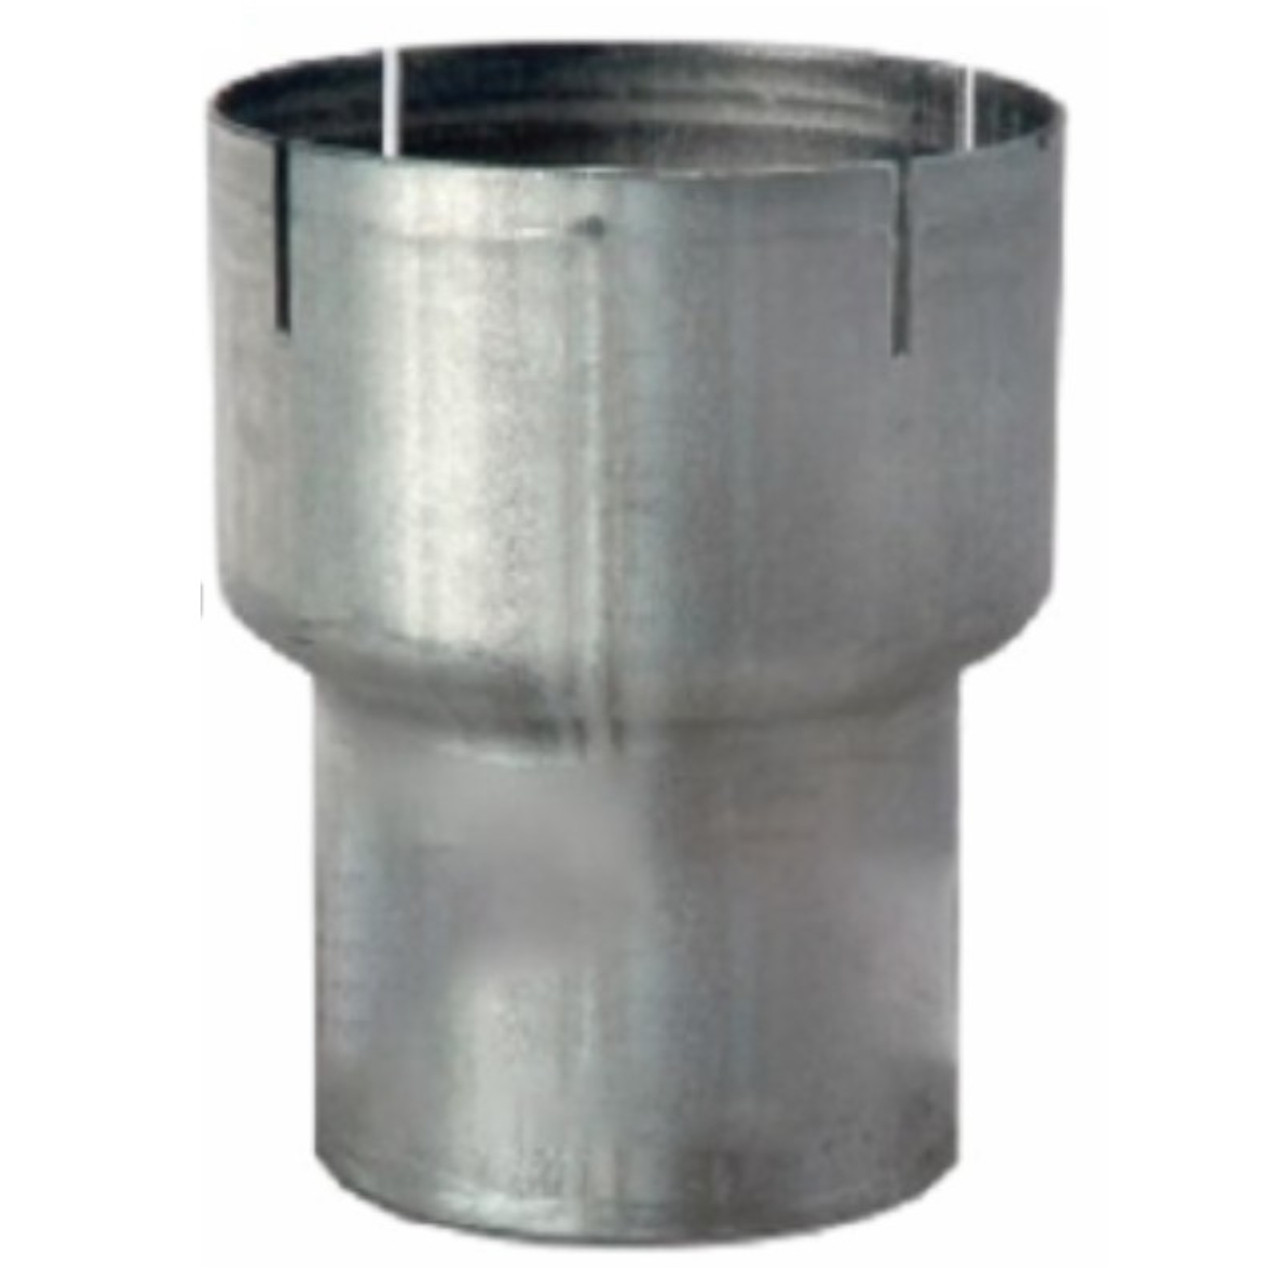 8 id to 5 od exhaust reducer aluminized pipe r8i 5oa